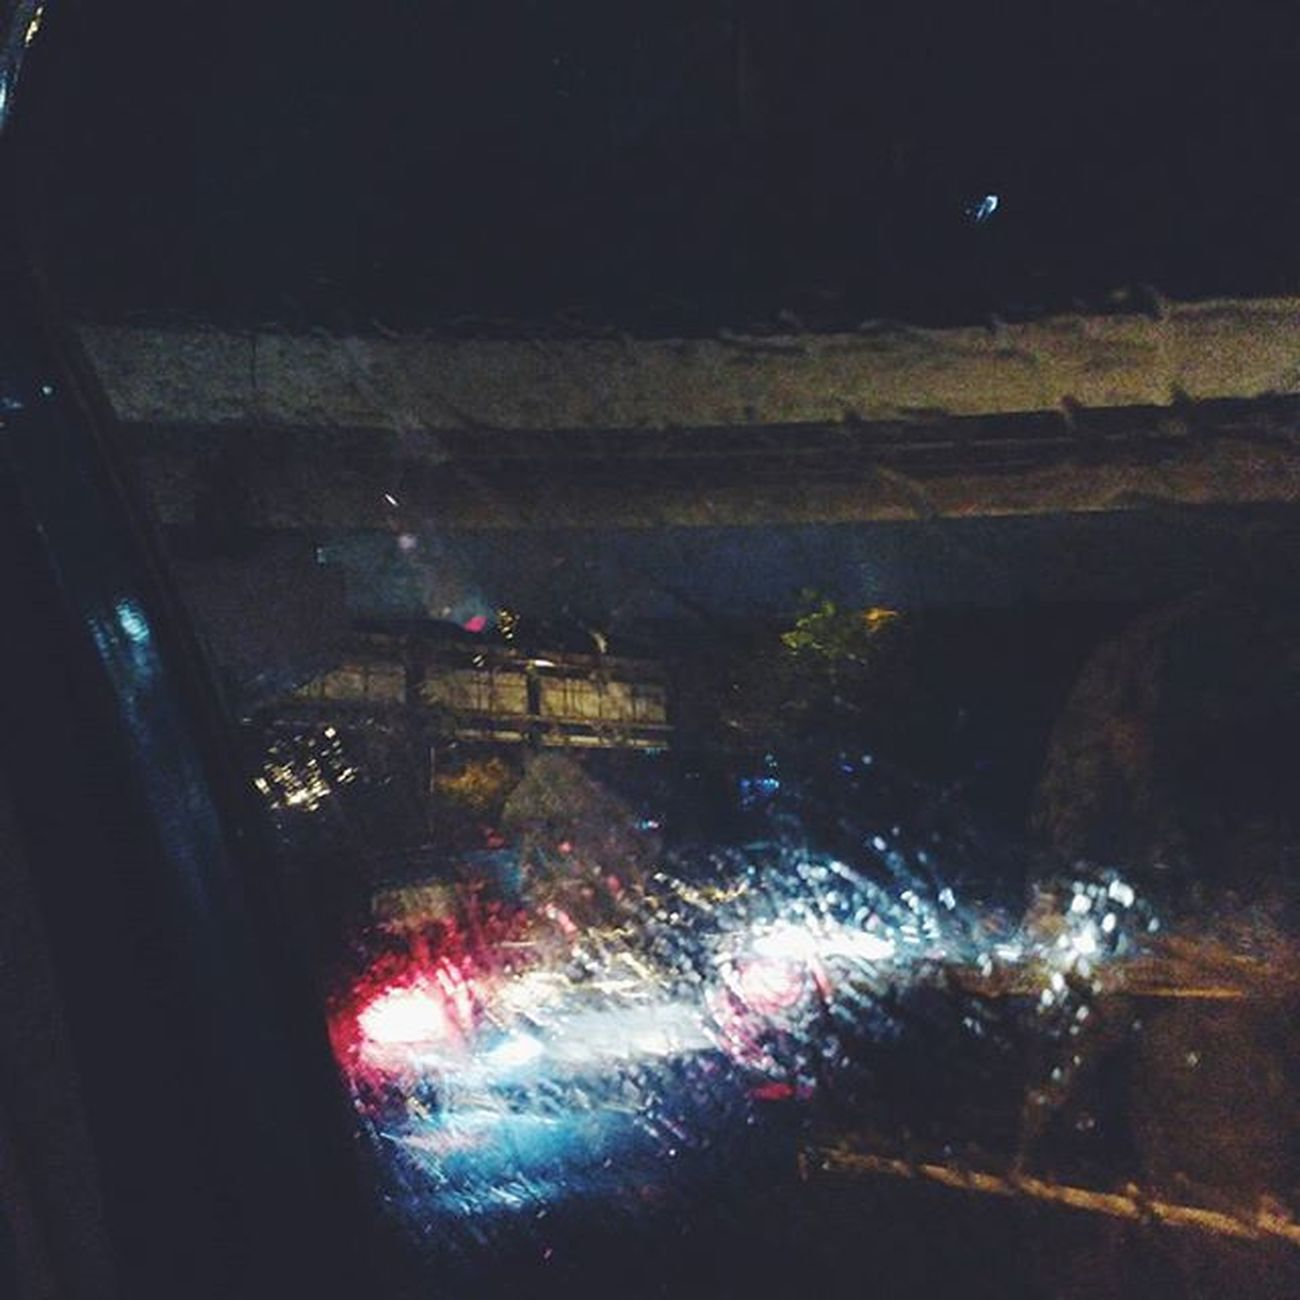 Winter rains. Winters Rains VSCO Cuddleseasonishere Sweaterweather Mumbai MumbaiDreams Mumbairains Motog3 Vscocam Vscolife Vscogood Vscogram Vscogrid